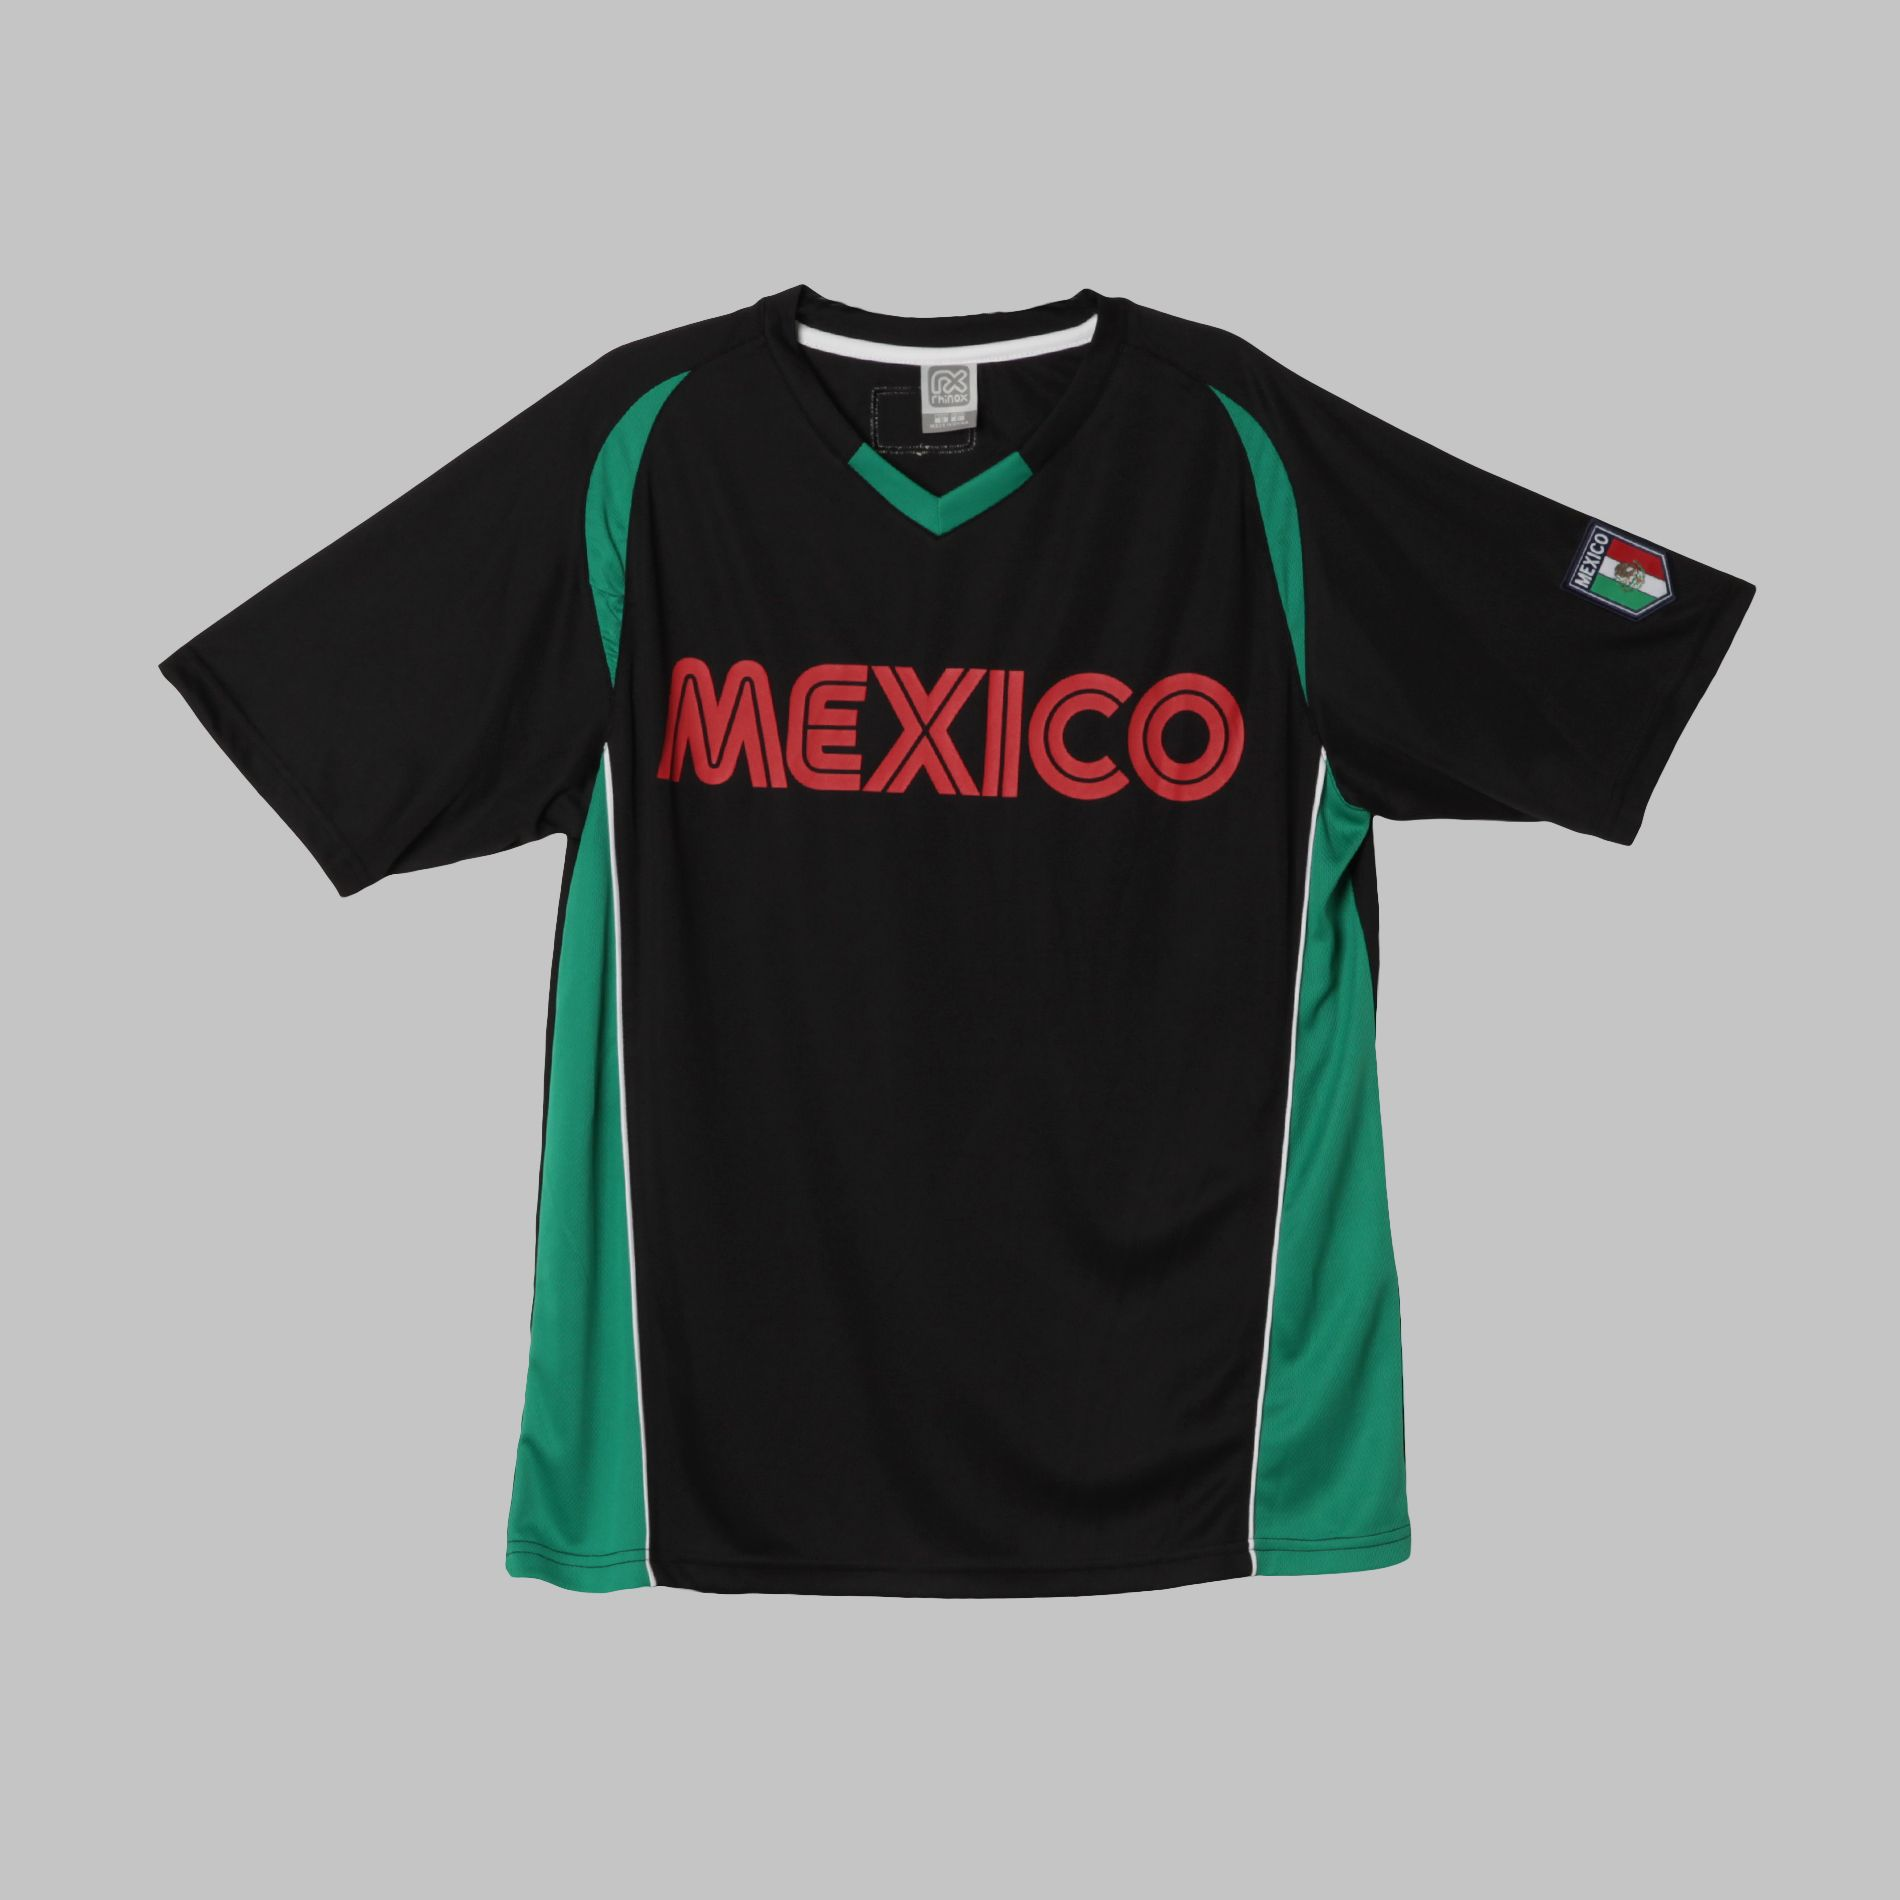 Licensed Men's Soccer Jersey at Kmart.com